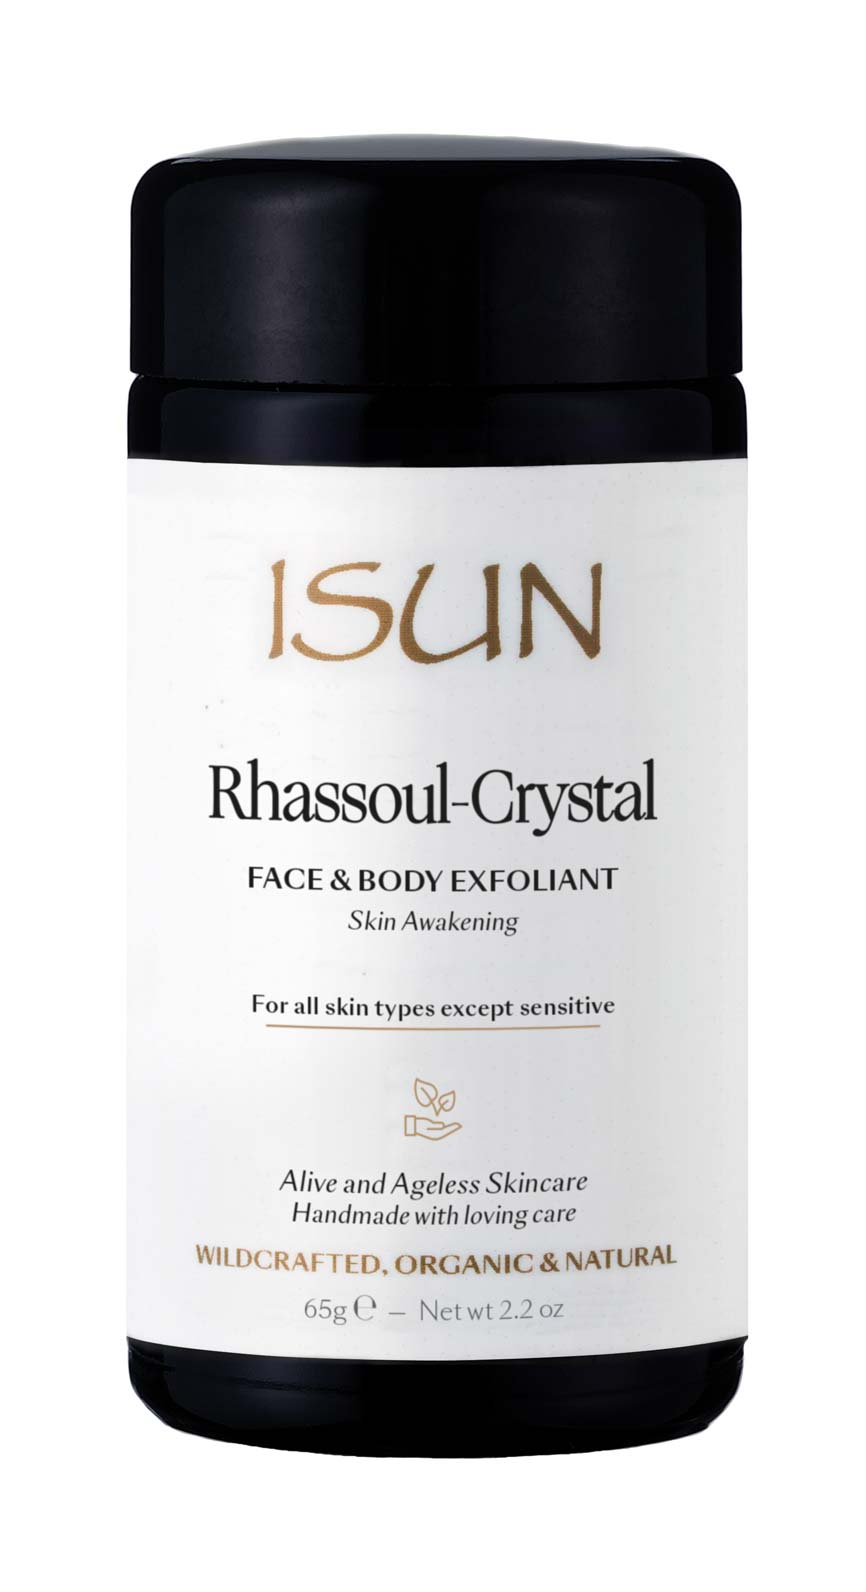 Rhassoul-Crystal Face & Body Exfoliant